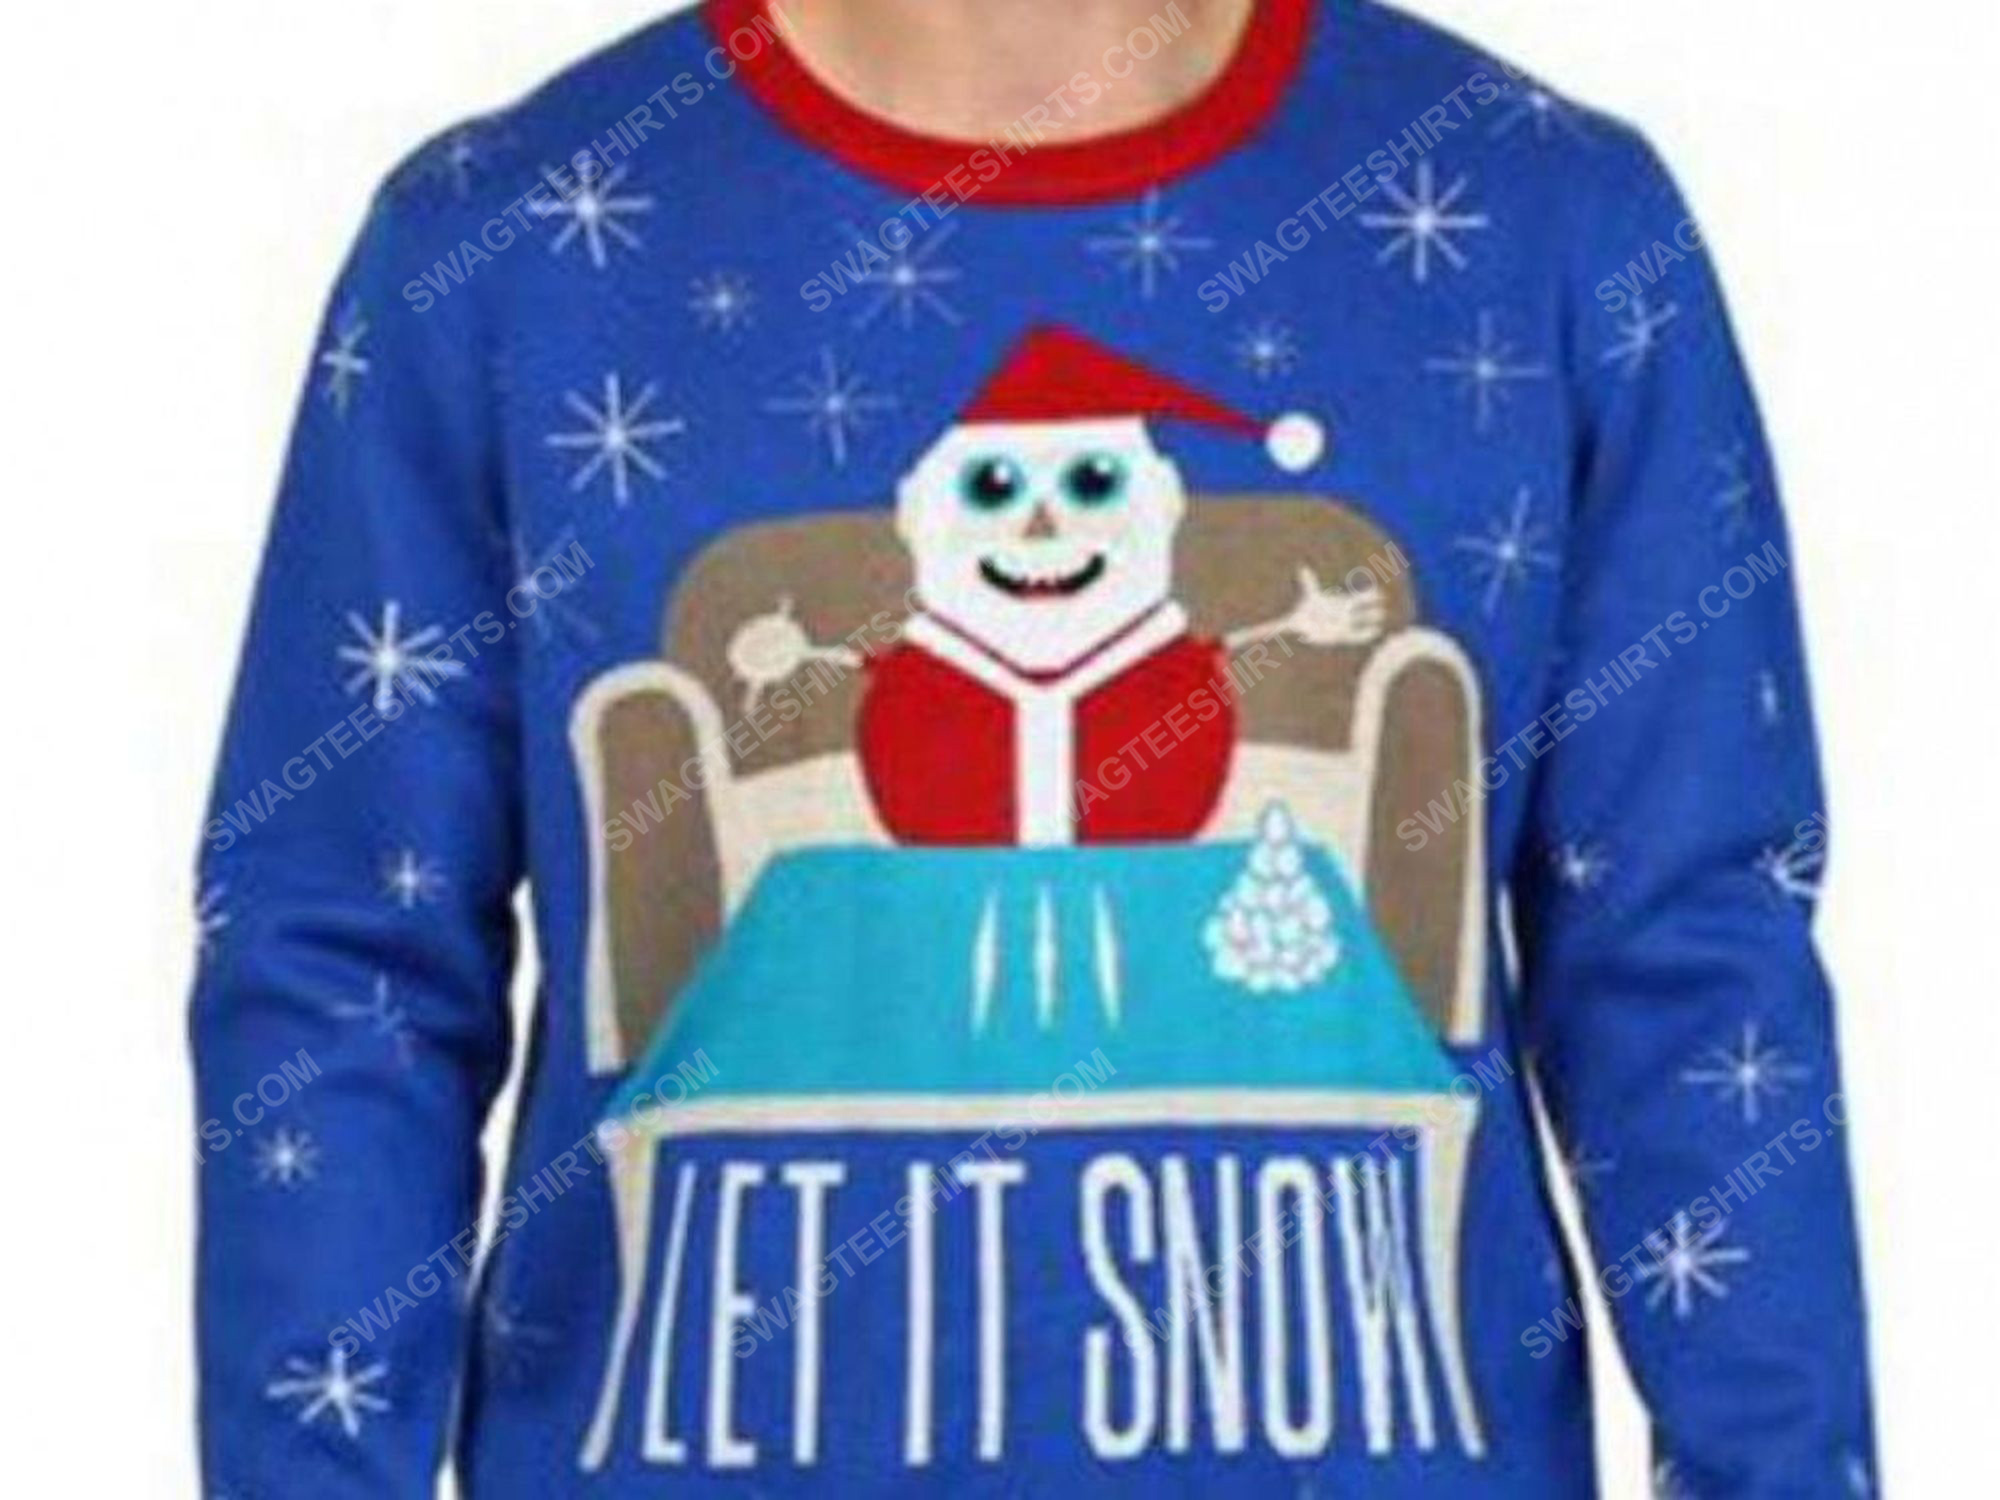 Christmas party let it snow cocaine full print ugly christmas sweater 2